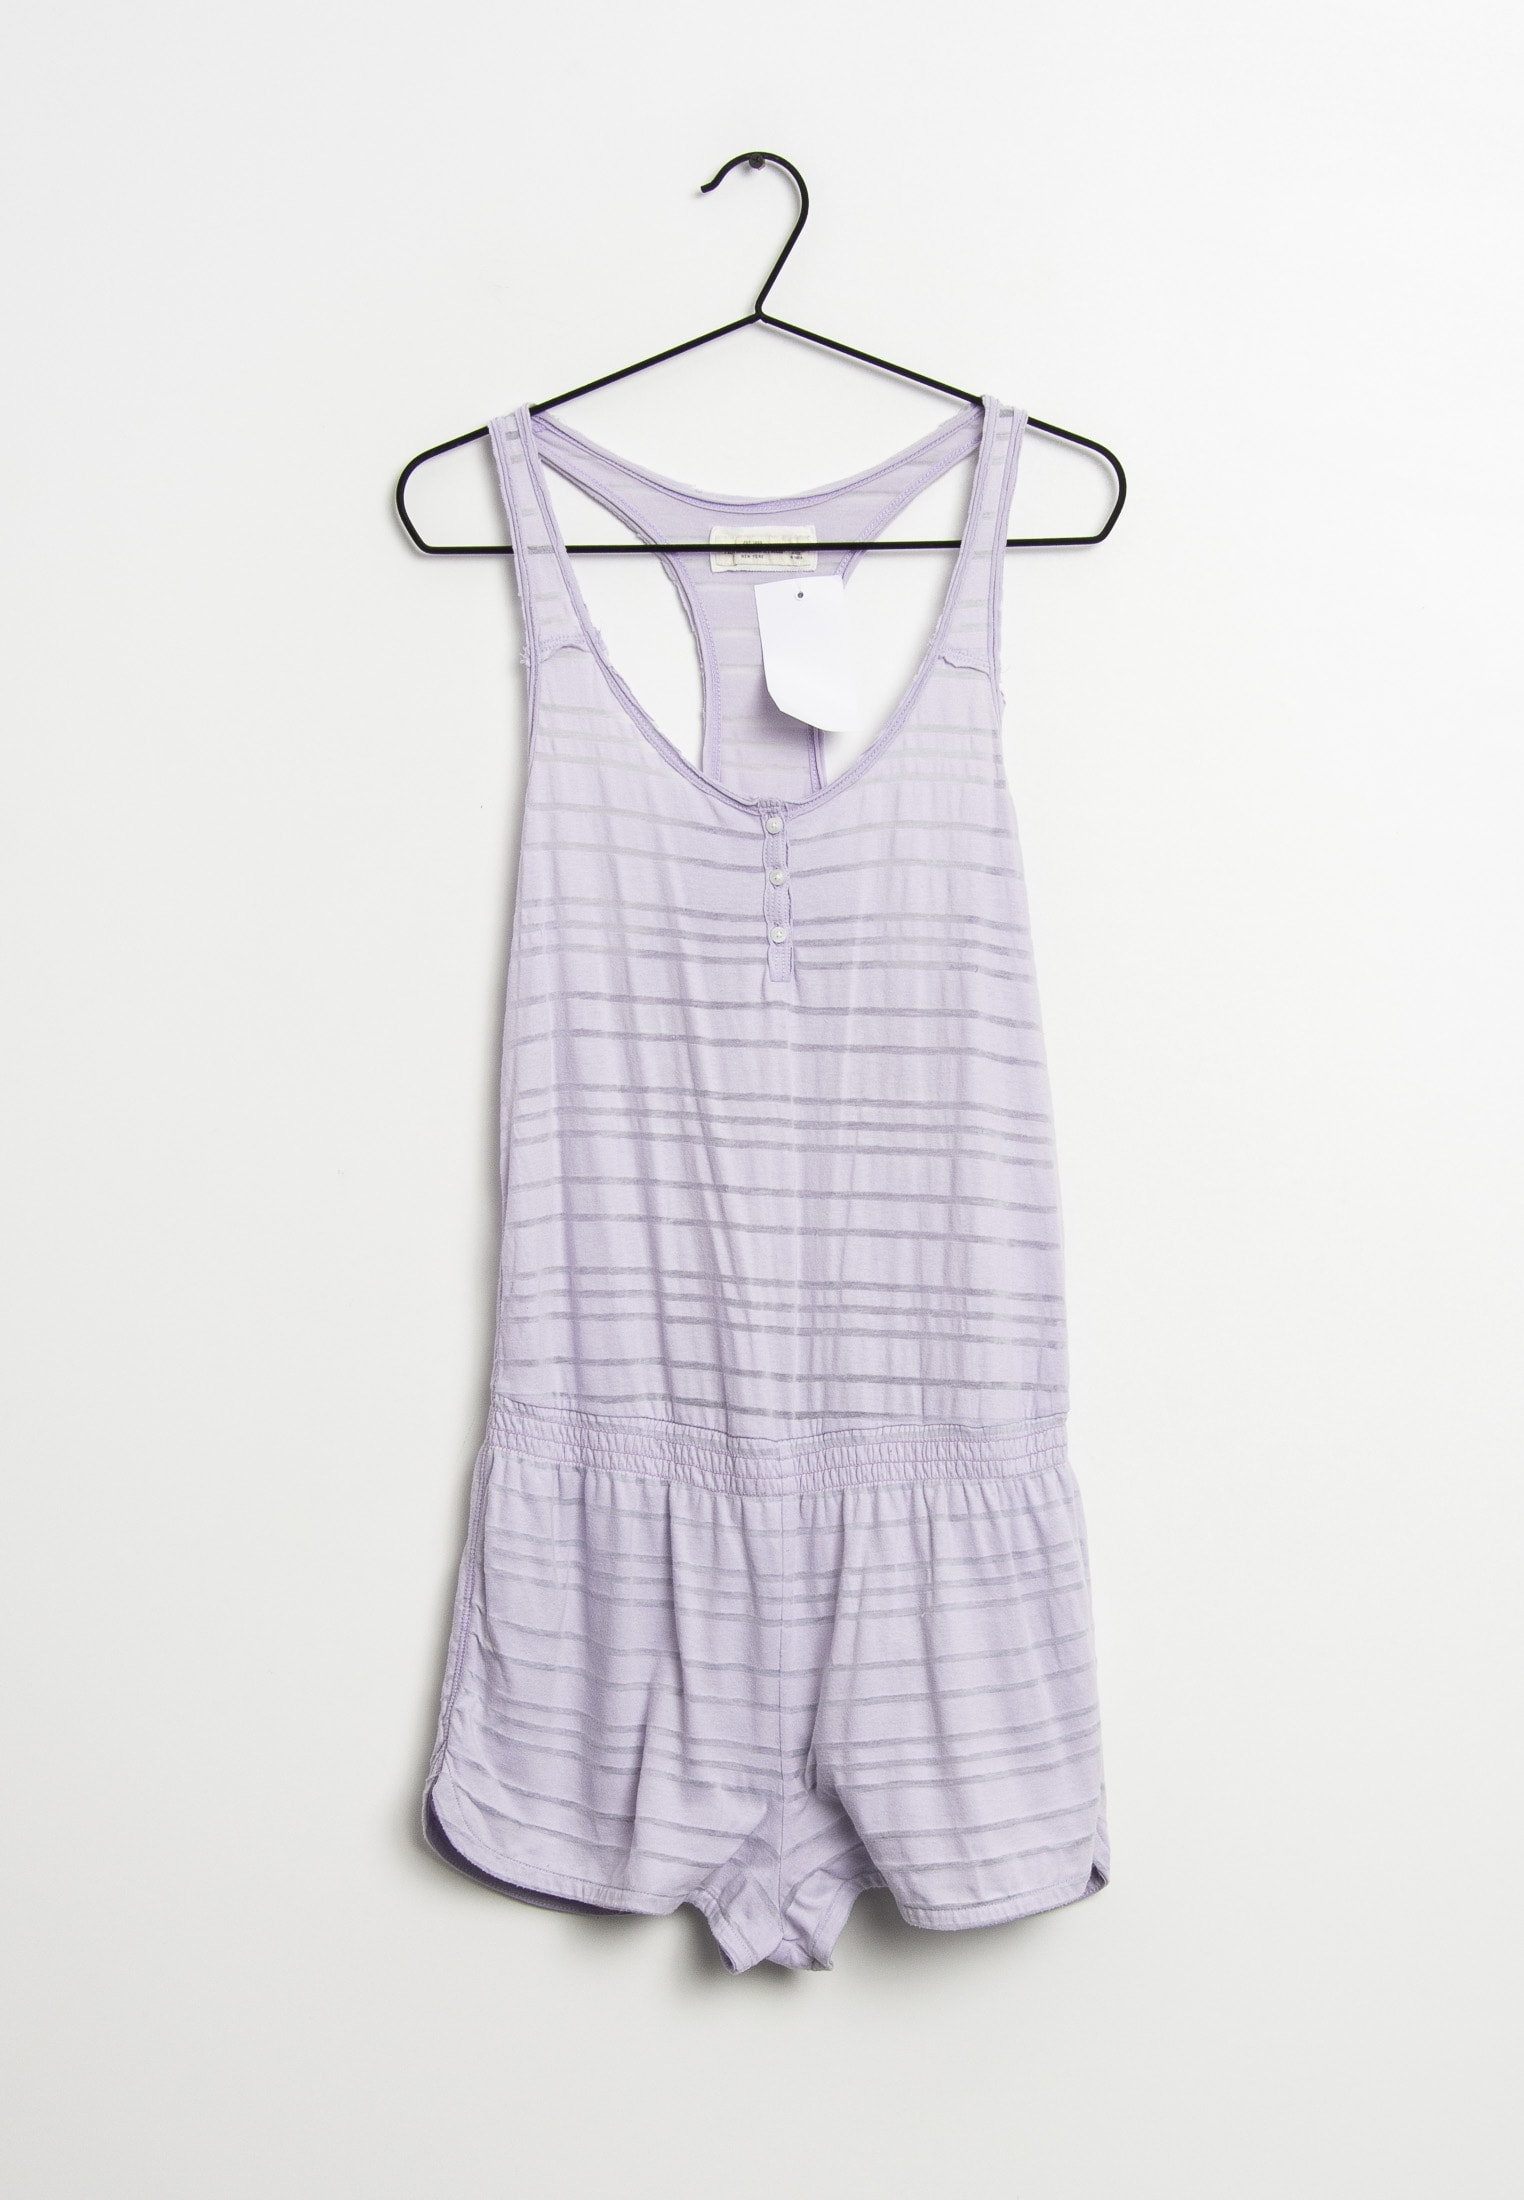 Abercrombie & Fitch Jumpsuit / Overall Lila Gr.M